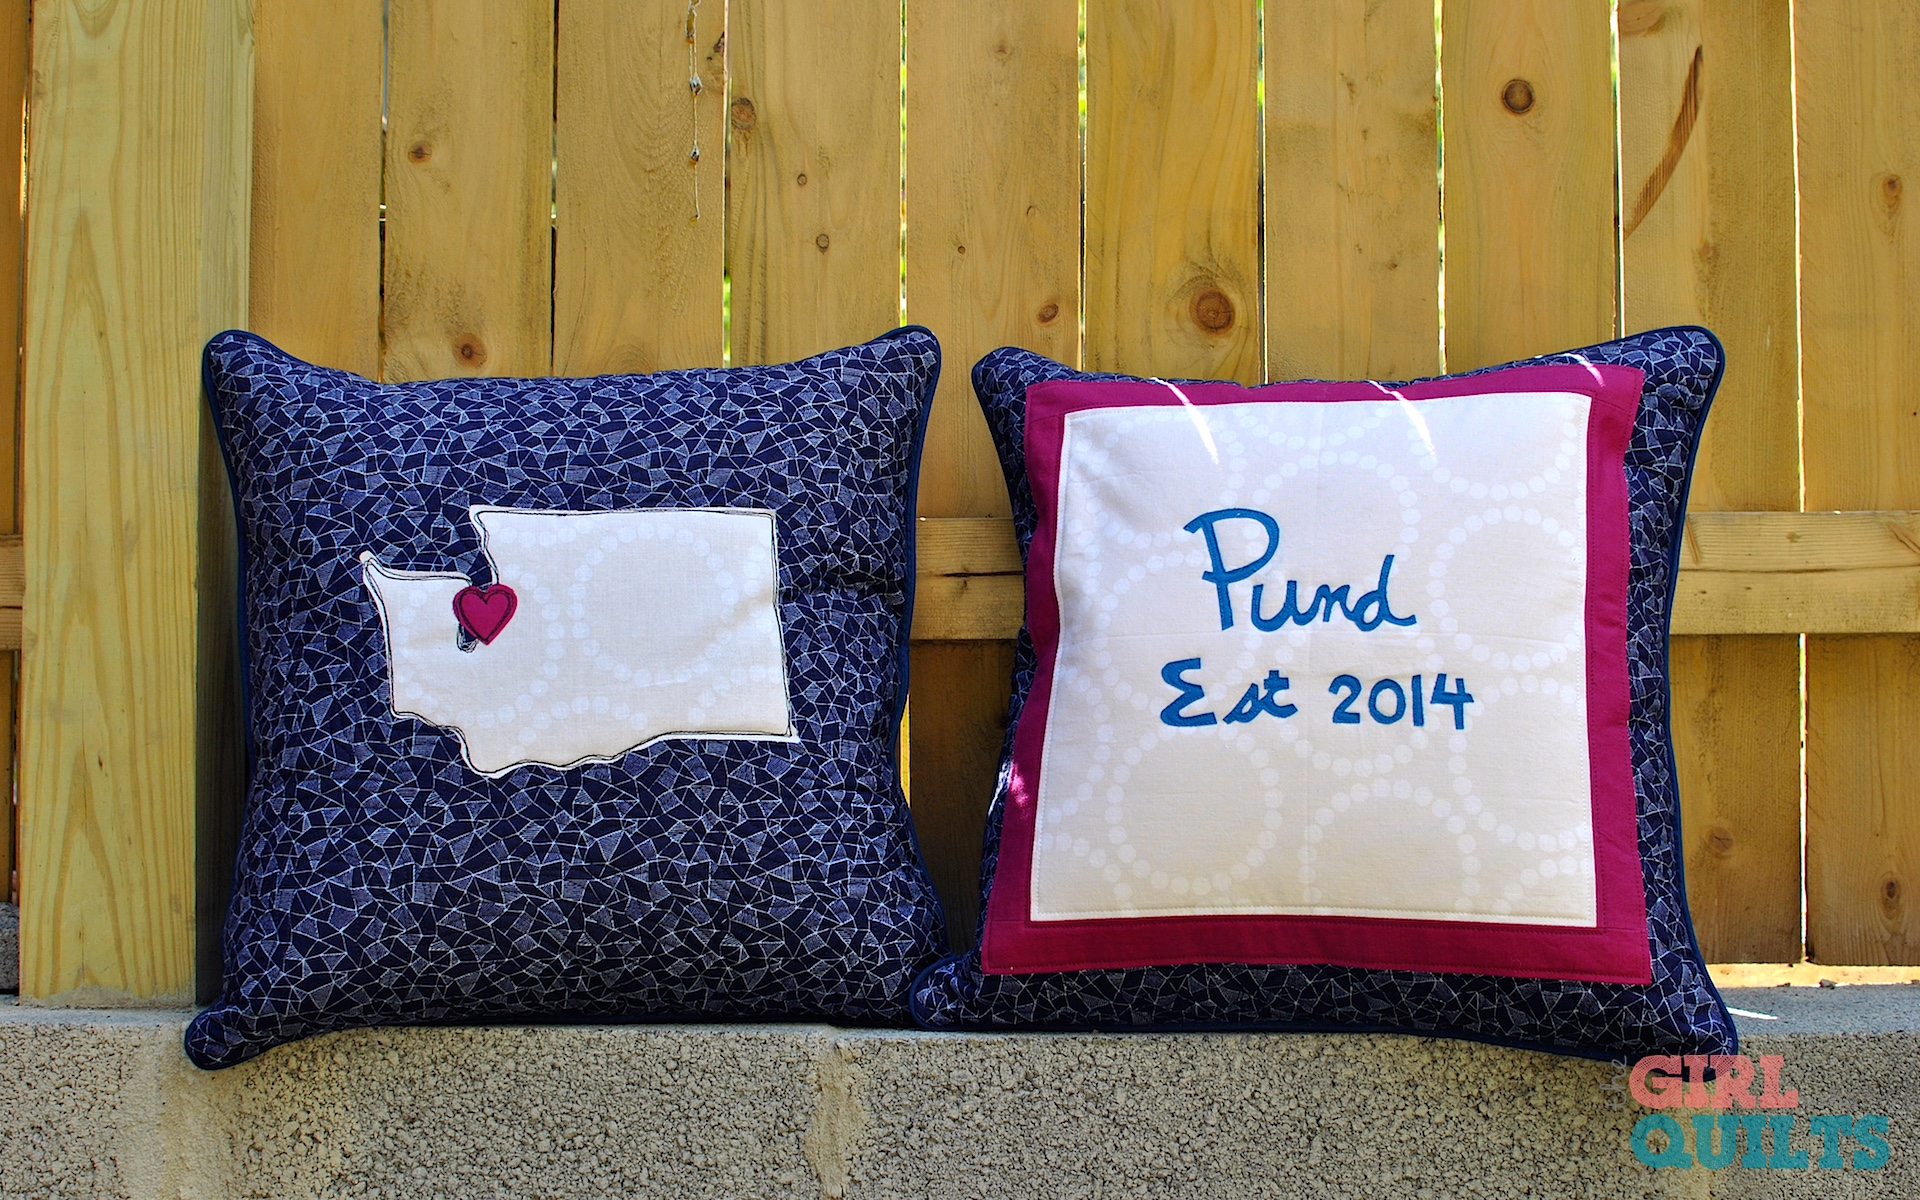 Pund wedding pillows